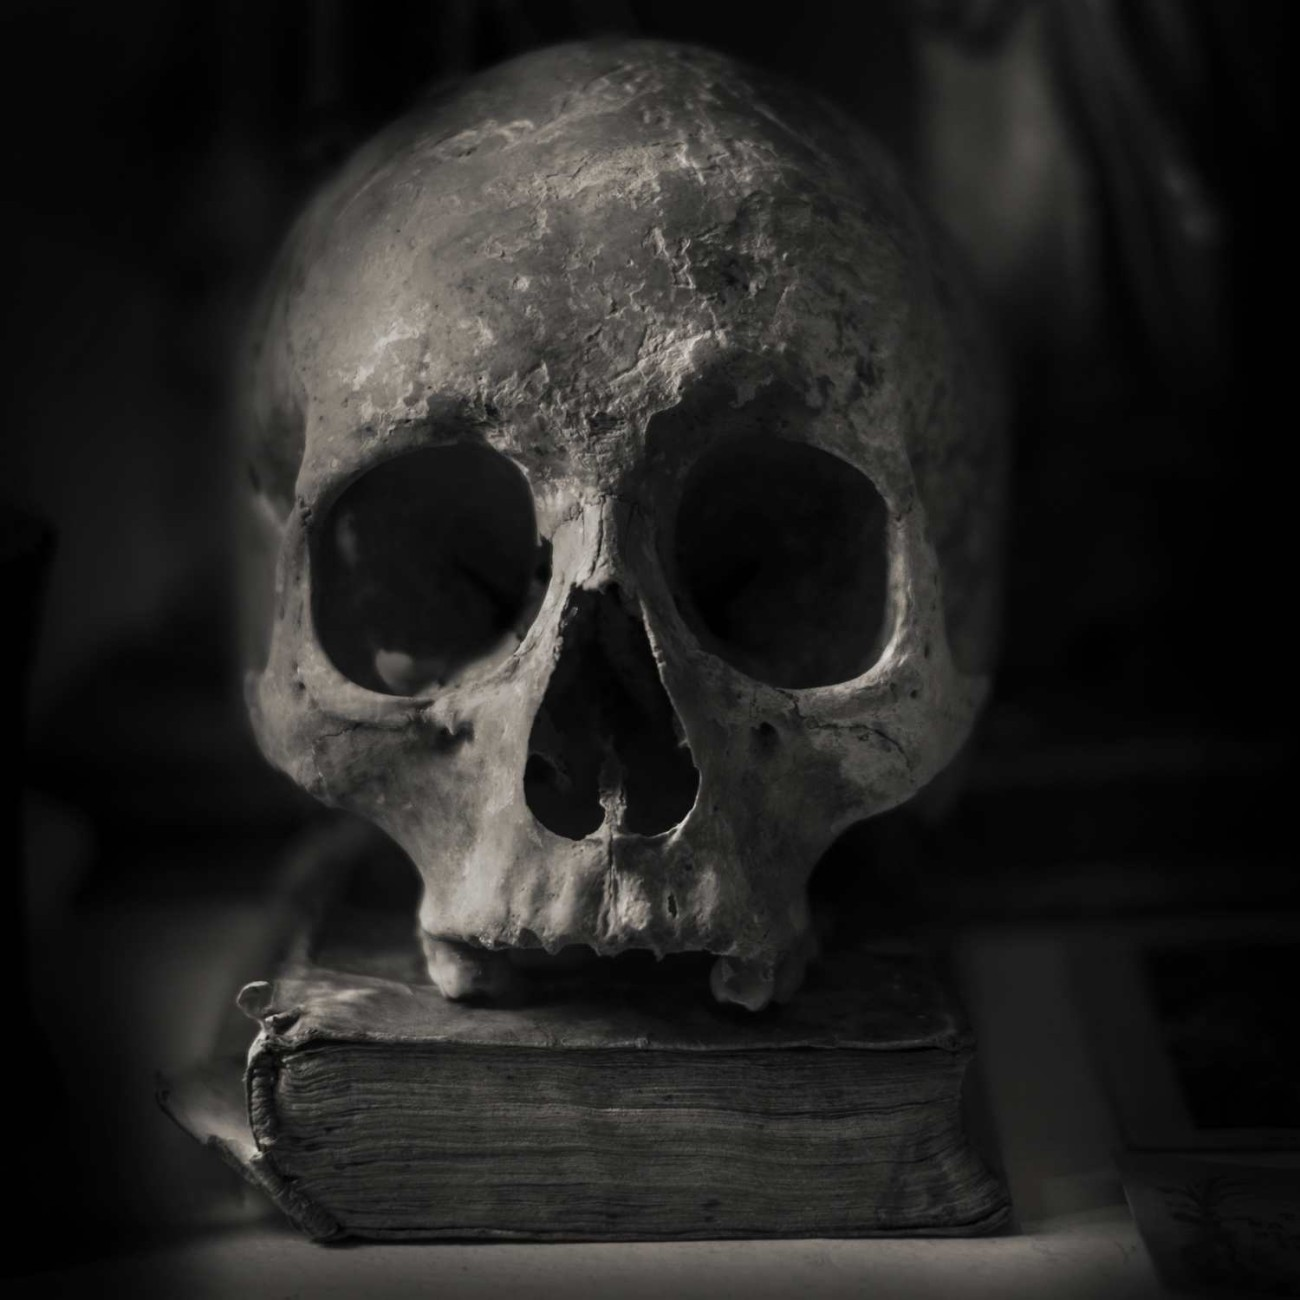 Skull and book, Monastary of Valdemossa, Spain, 2014